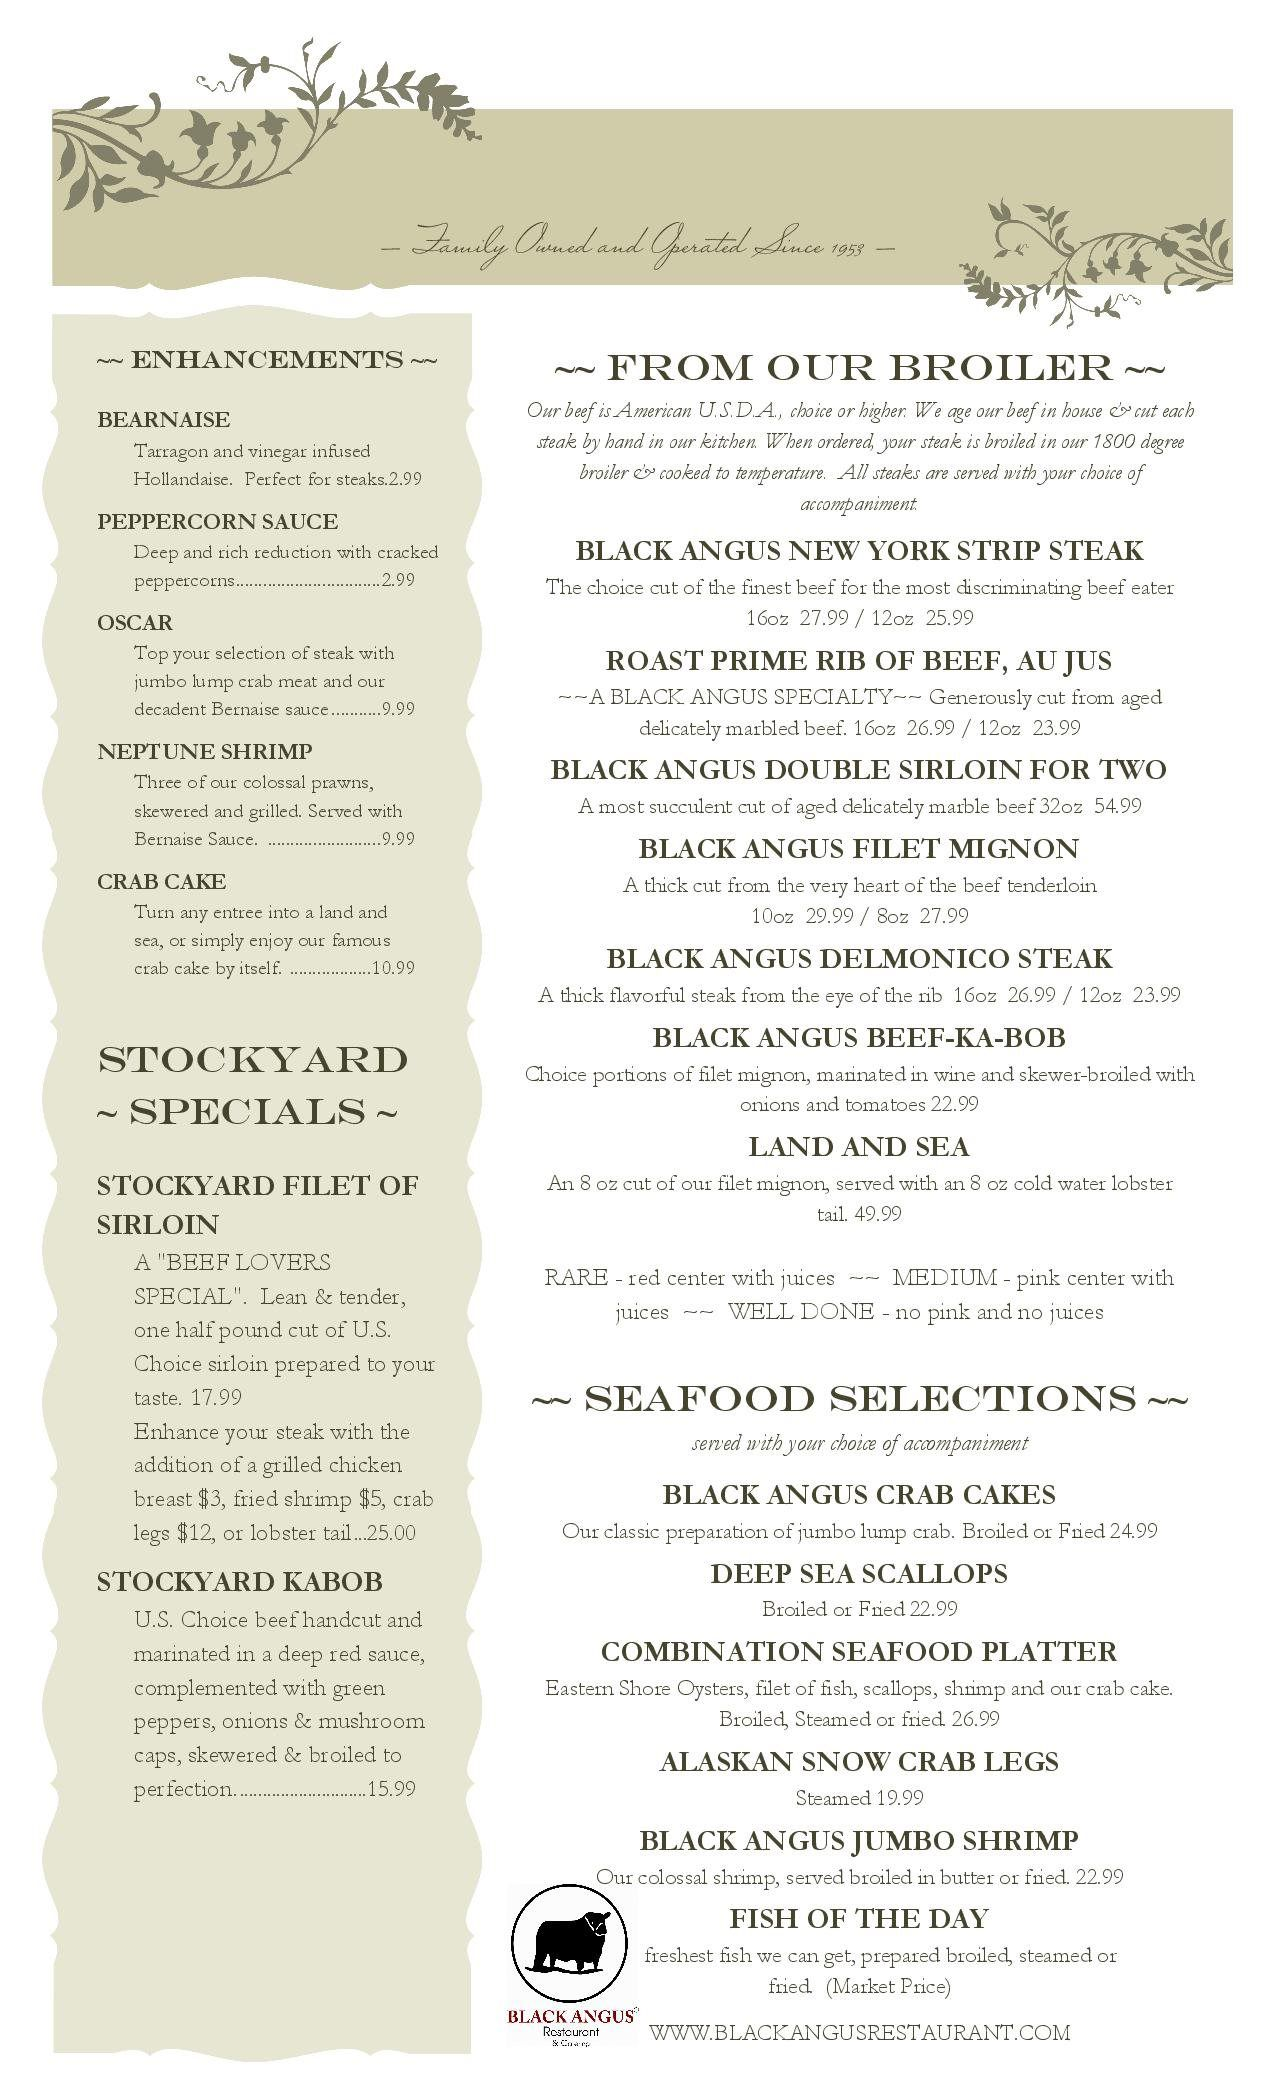 81 rows · Black Angus Steakhouse Menu Prices, Price List. List of prices for all items on the Black .